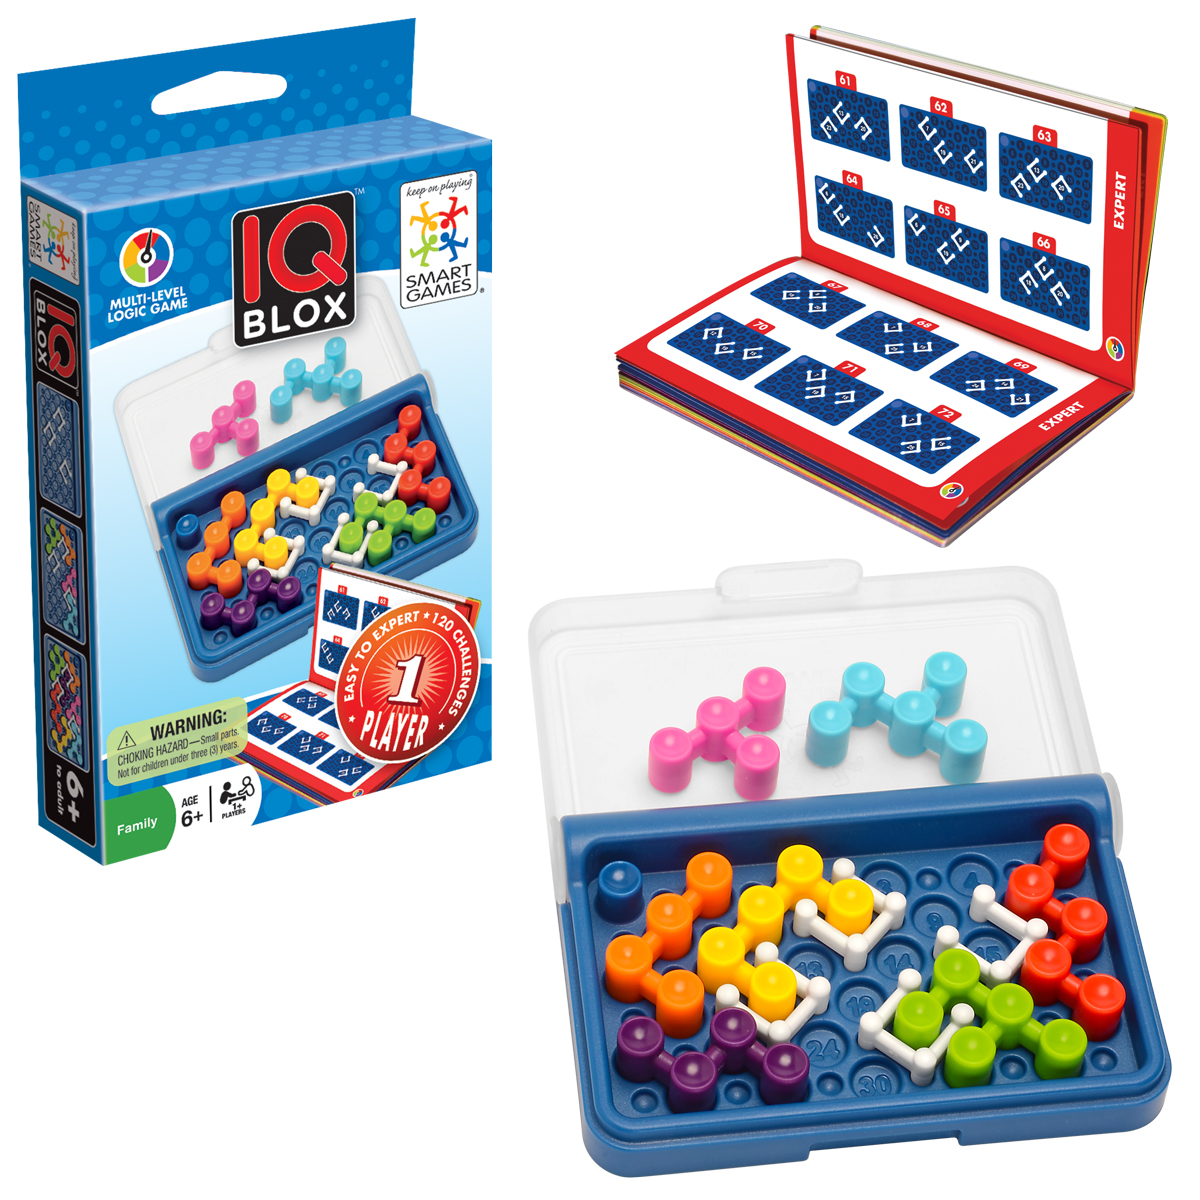 Games and Toys for Gifted Children | National Association for Gifted ...